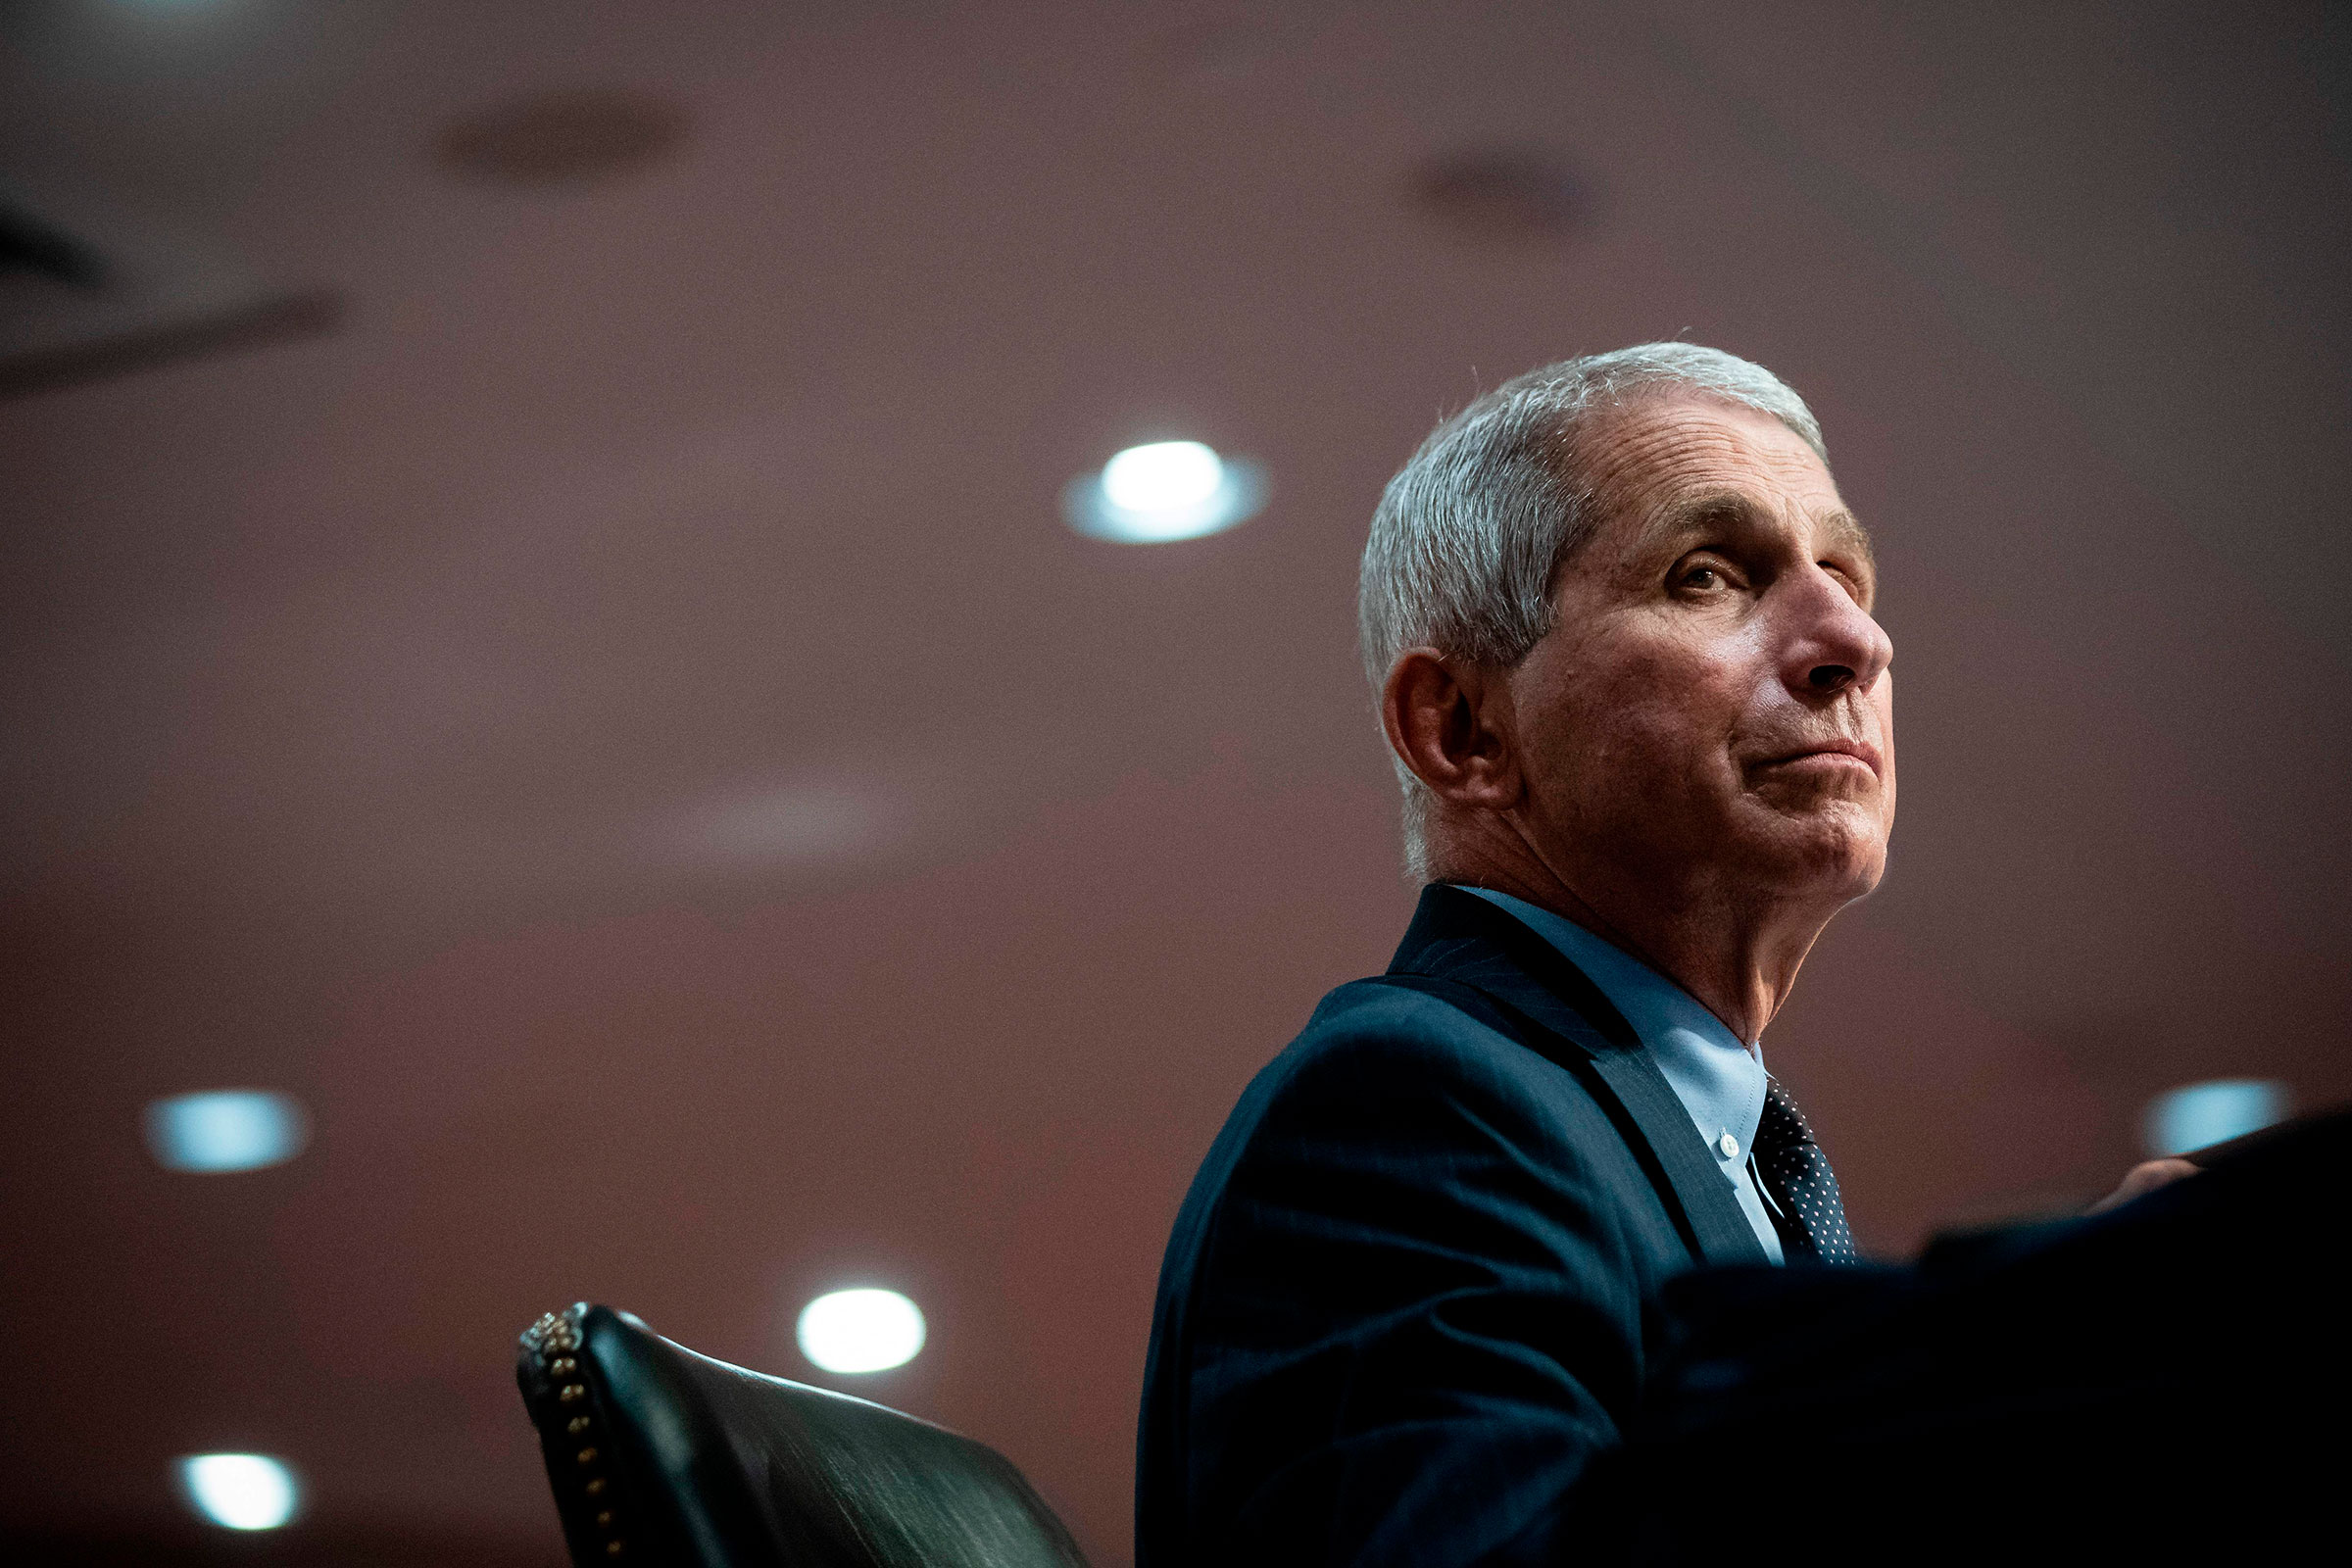 Anthony Fauci, director of the National Institute of Allergy and Infectious Diseases, listens during a Senate Health, Education, Labor and Pensions Committee hearing in Washington, DC, on June 30, 2020.